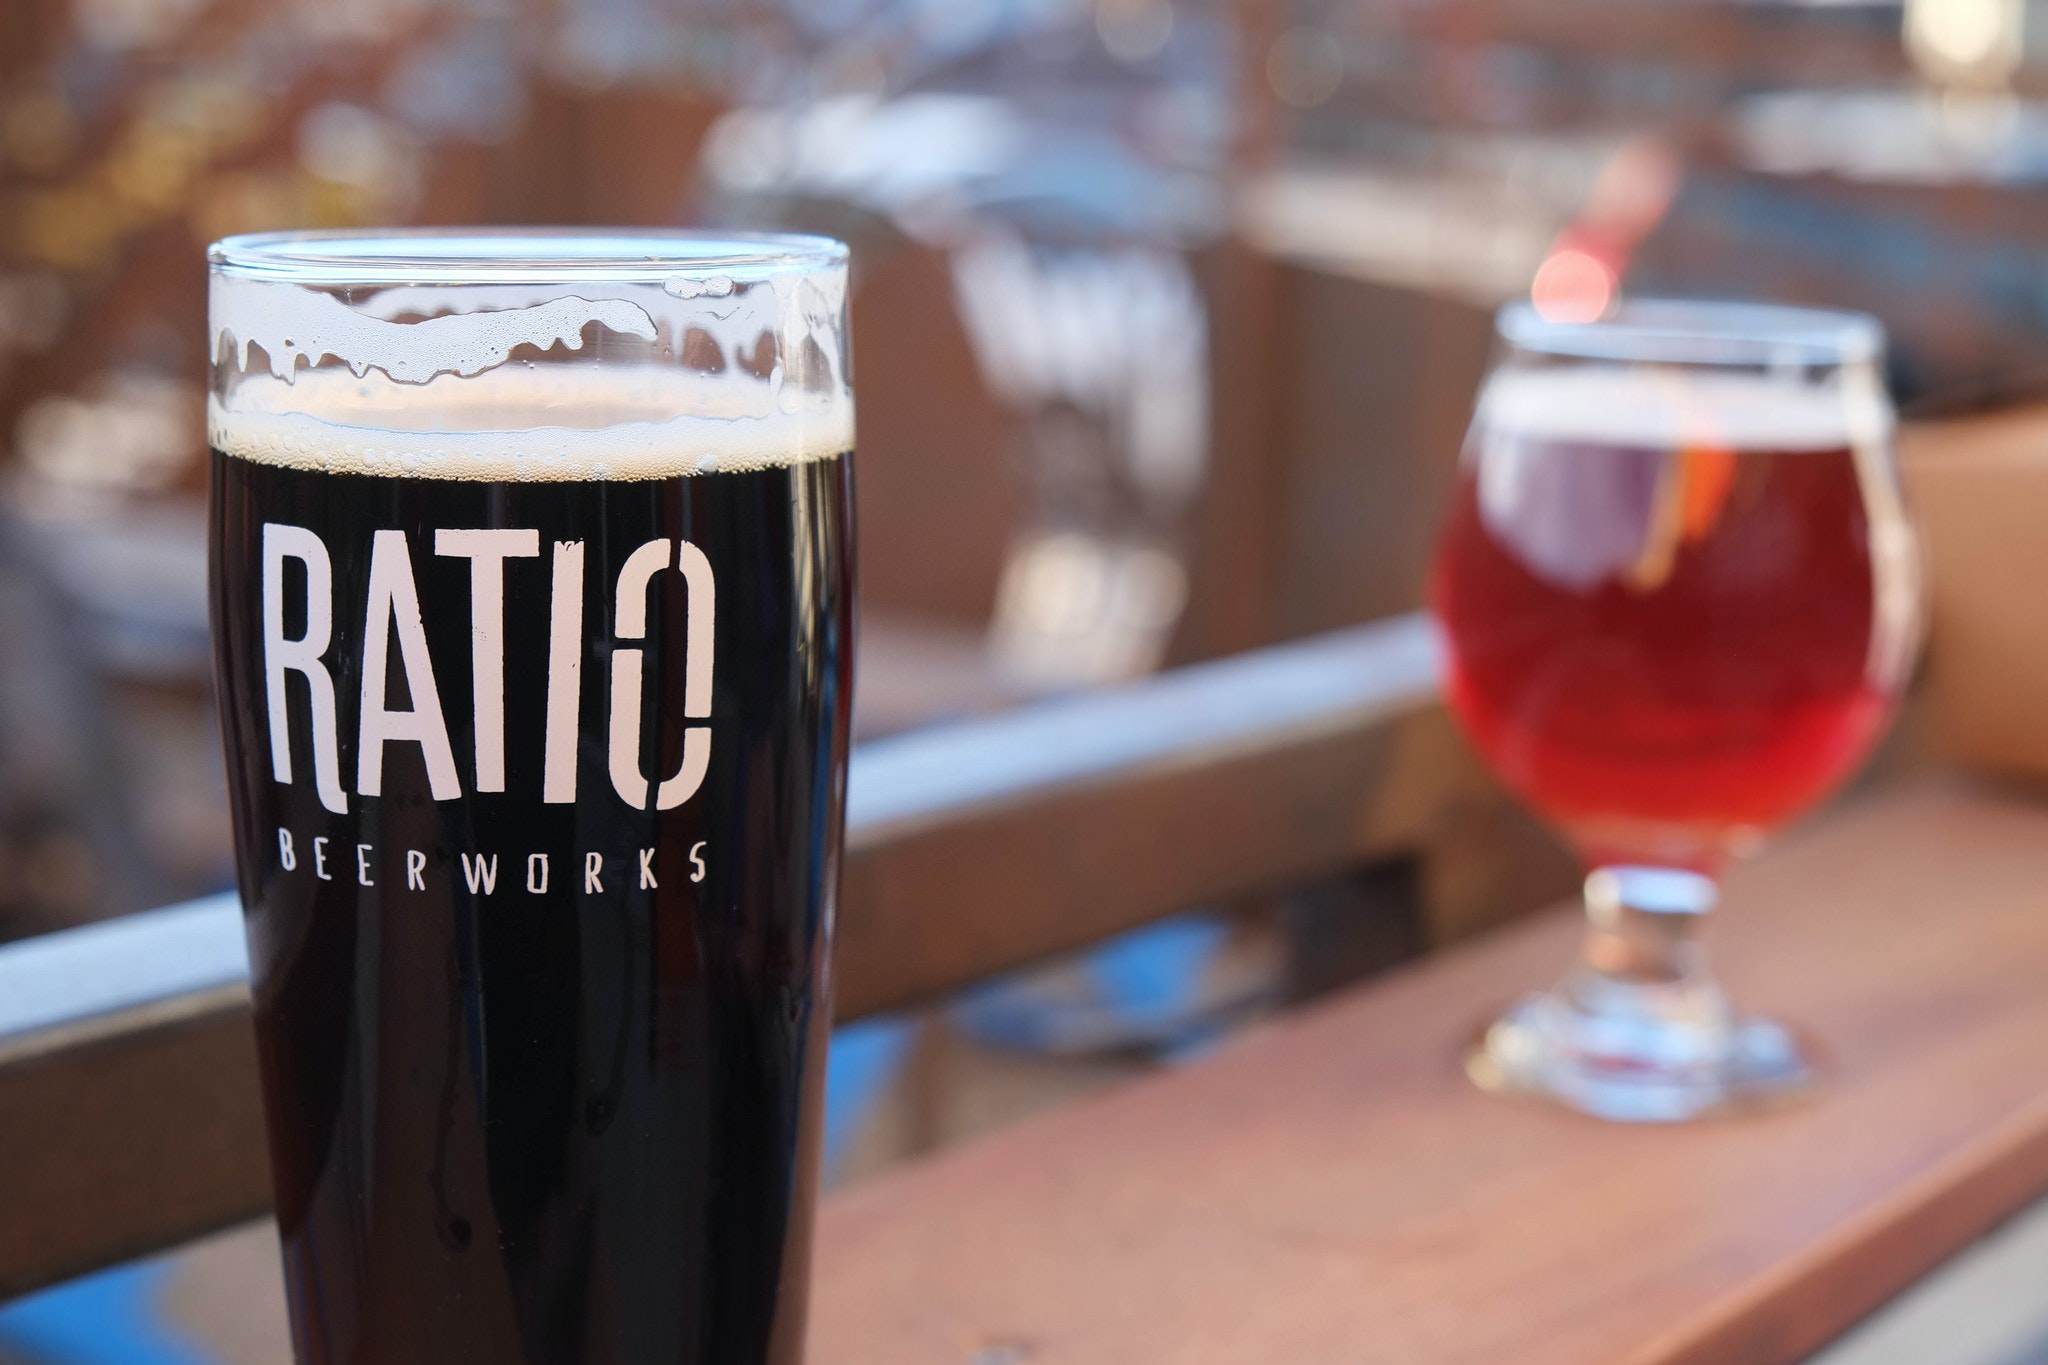 Ratio Beerworks in Denver, Colorado